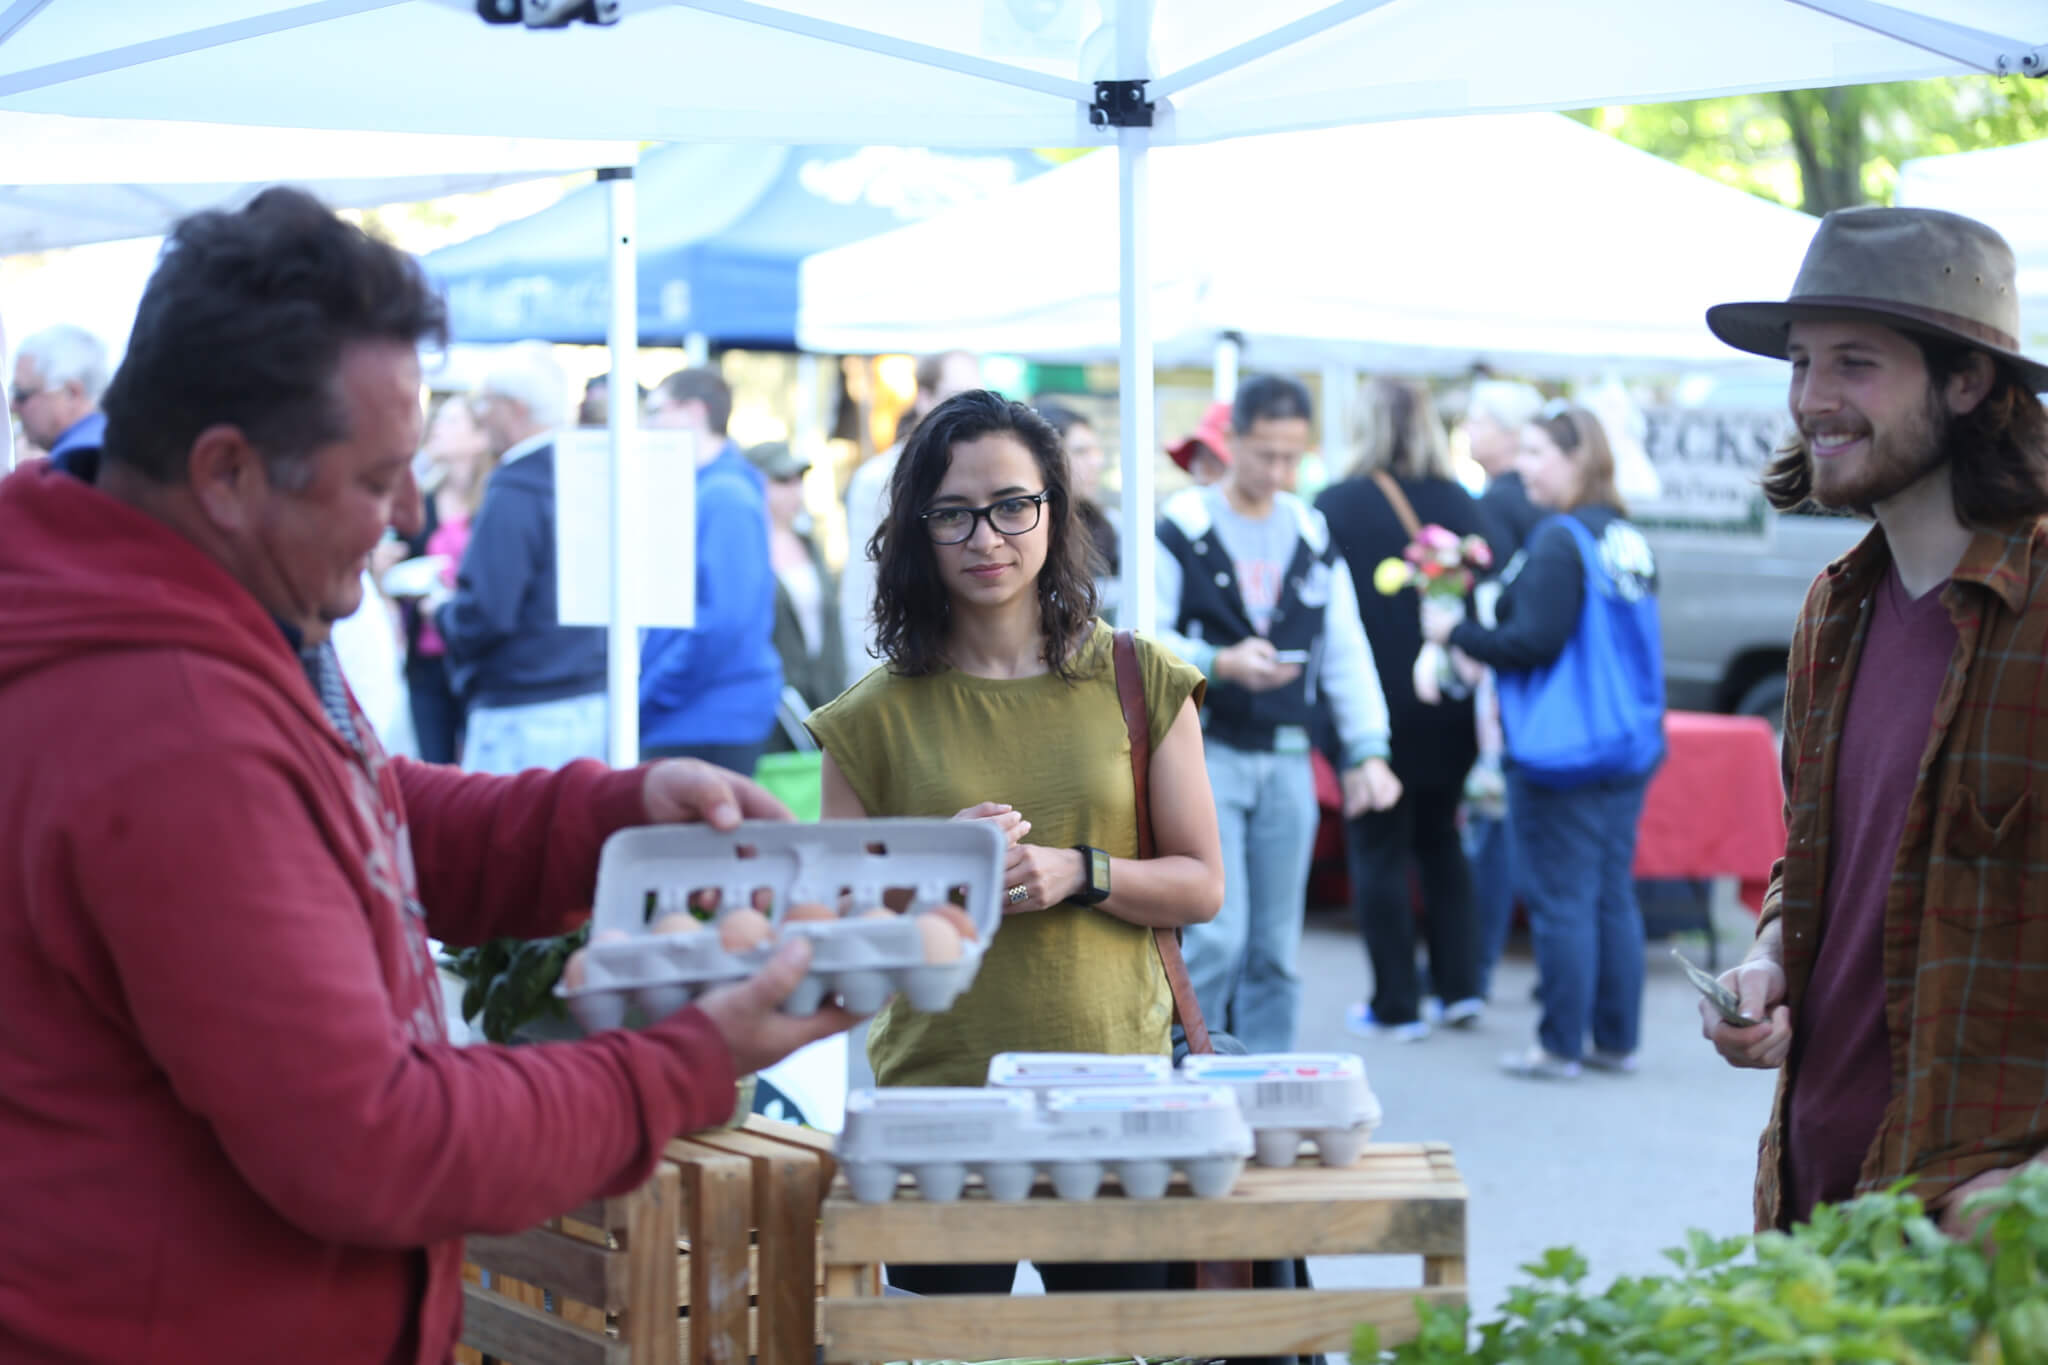 Ariana Torres discusses prices with a grower at the Lafayette Farmers Market.